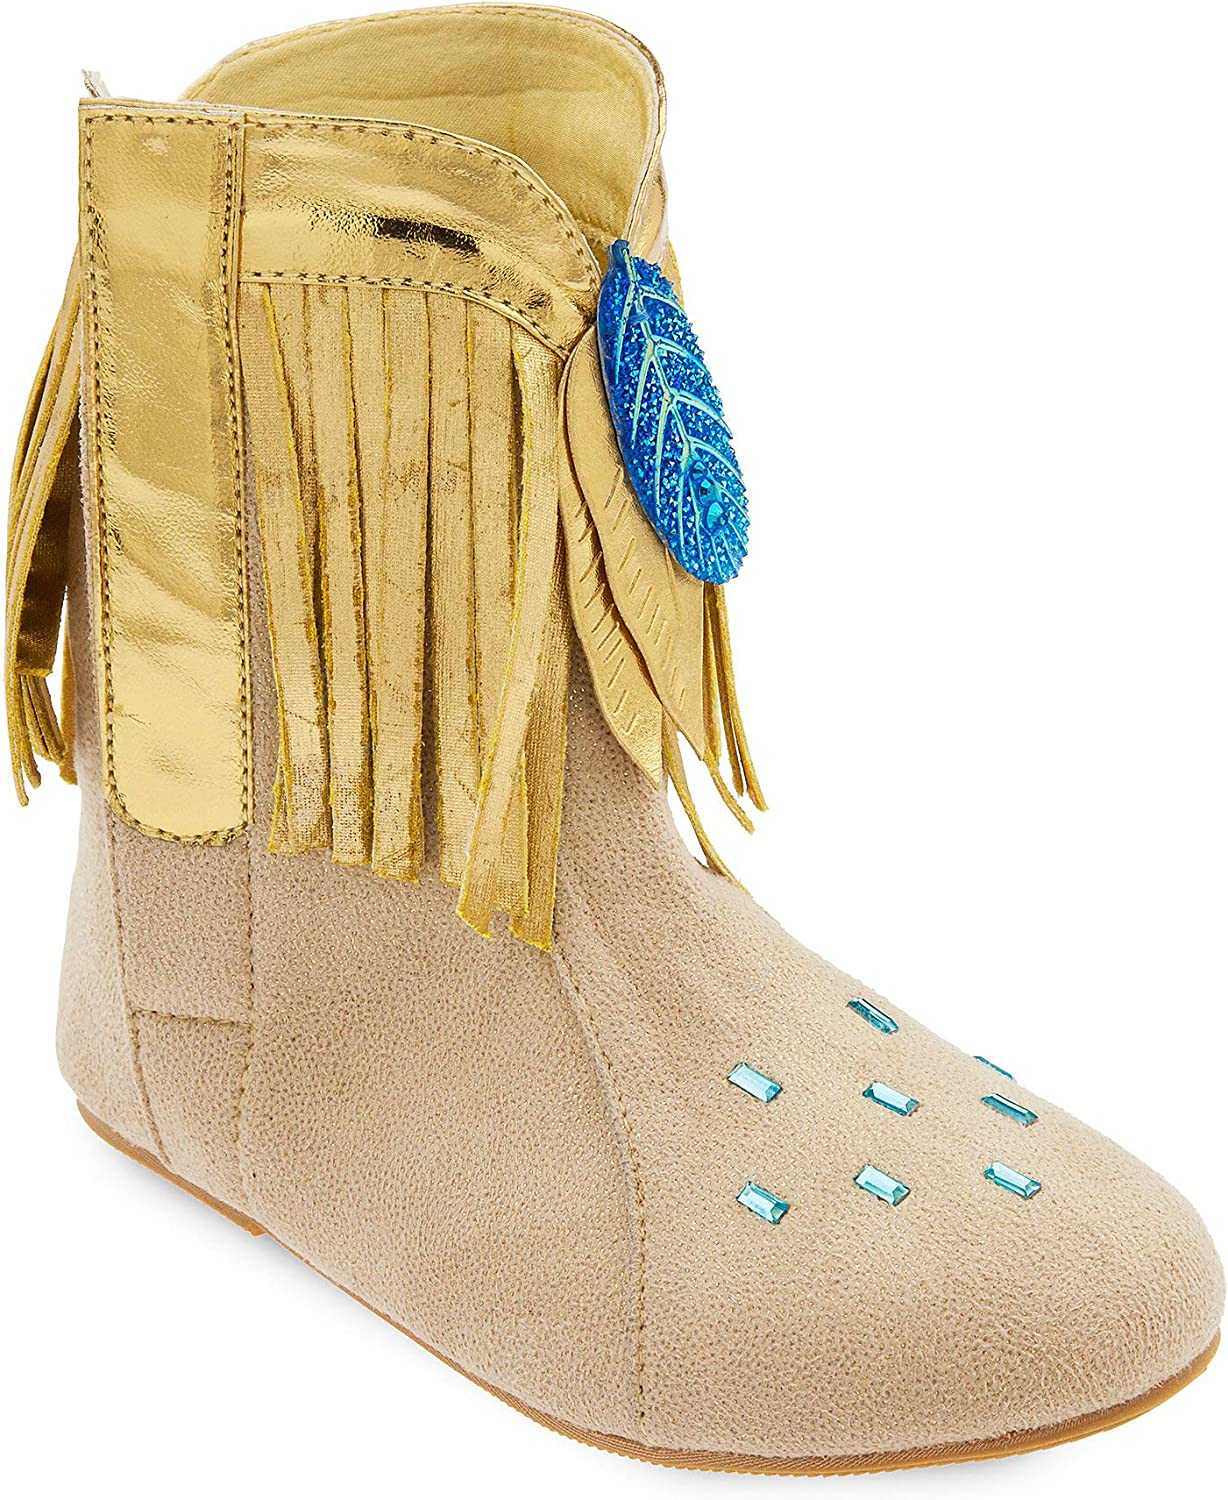 Jewelry Set American Indian Costume Disney Store Pocahontas Gold Shoes Boots